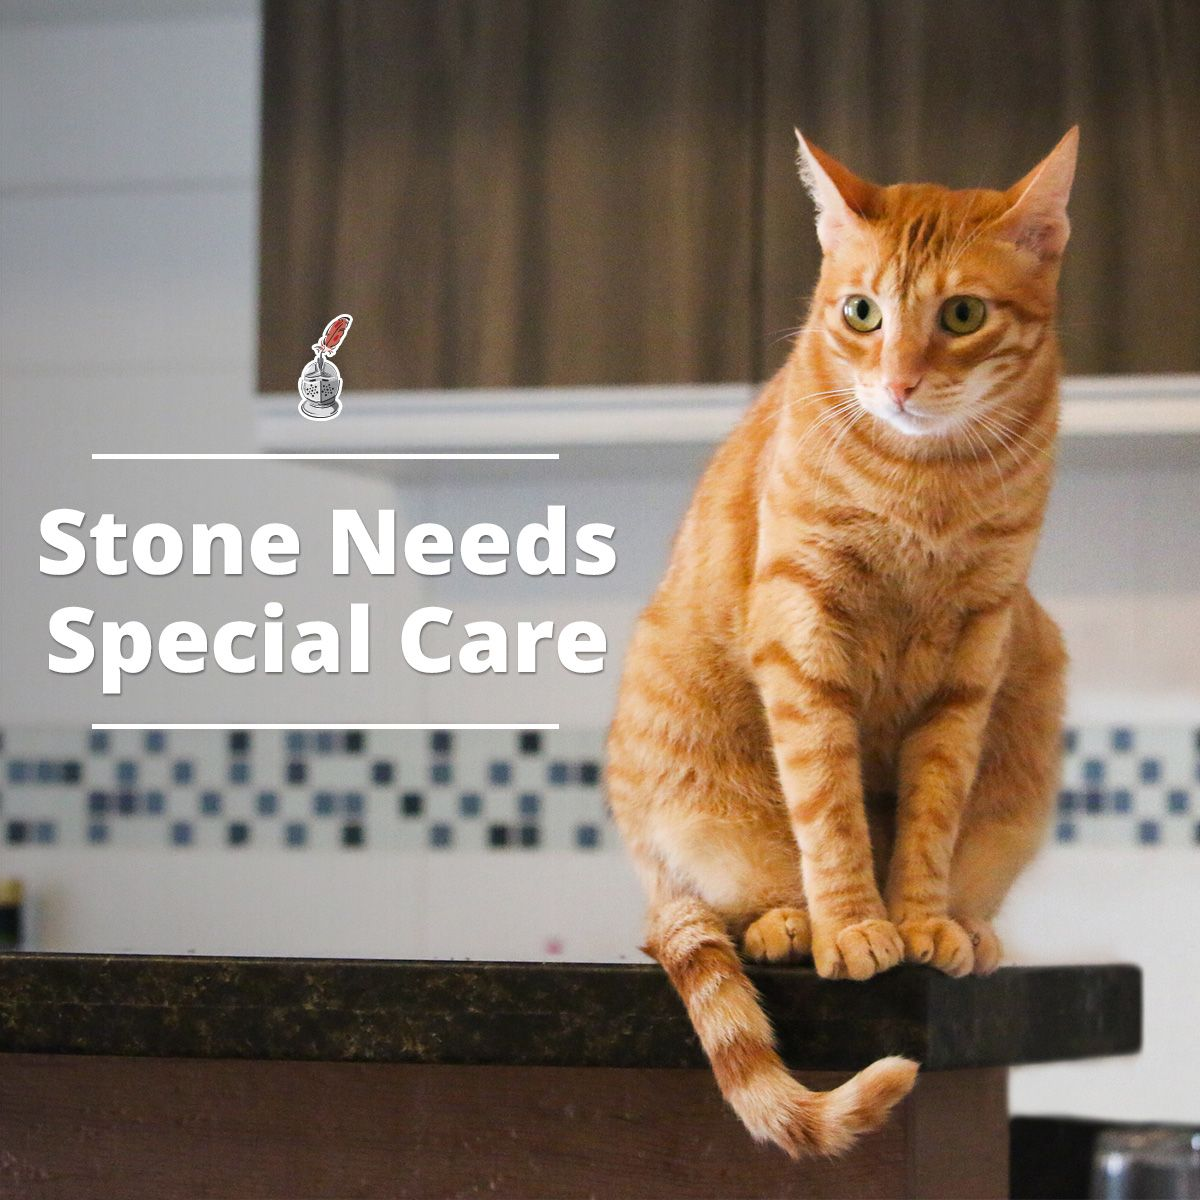 Stone Needs Special Care